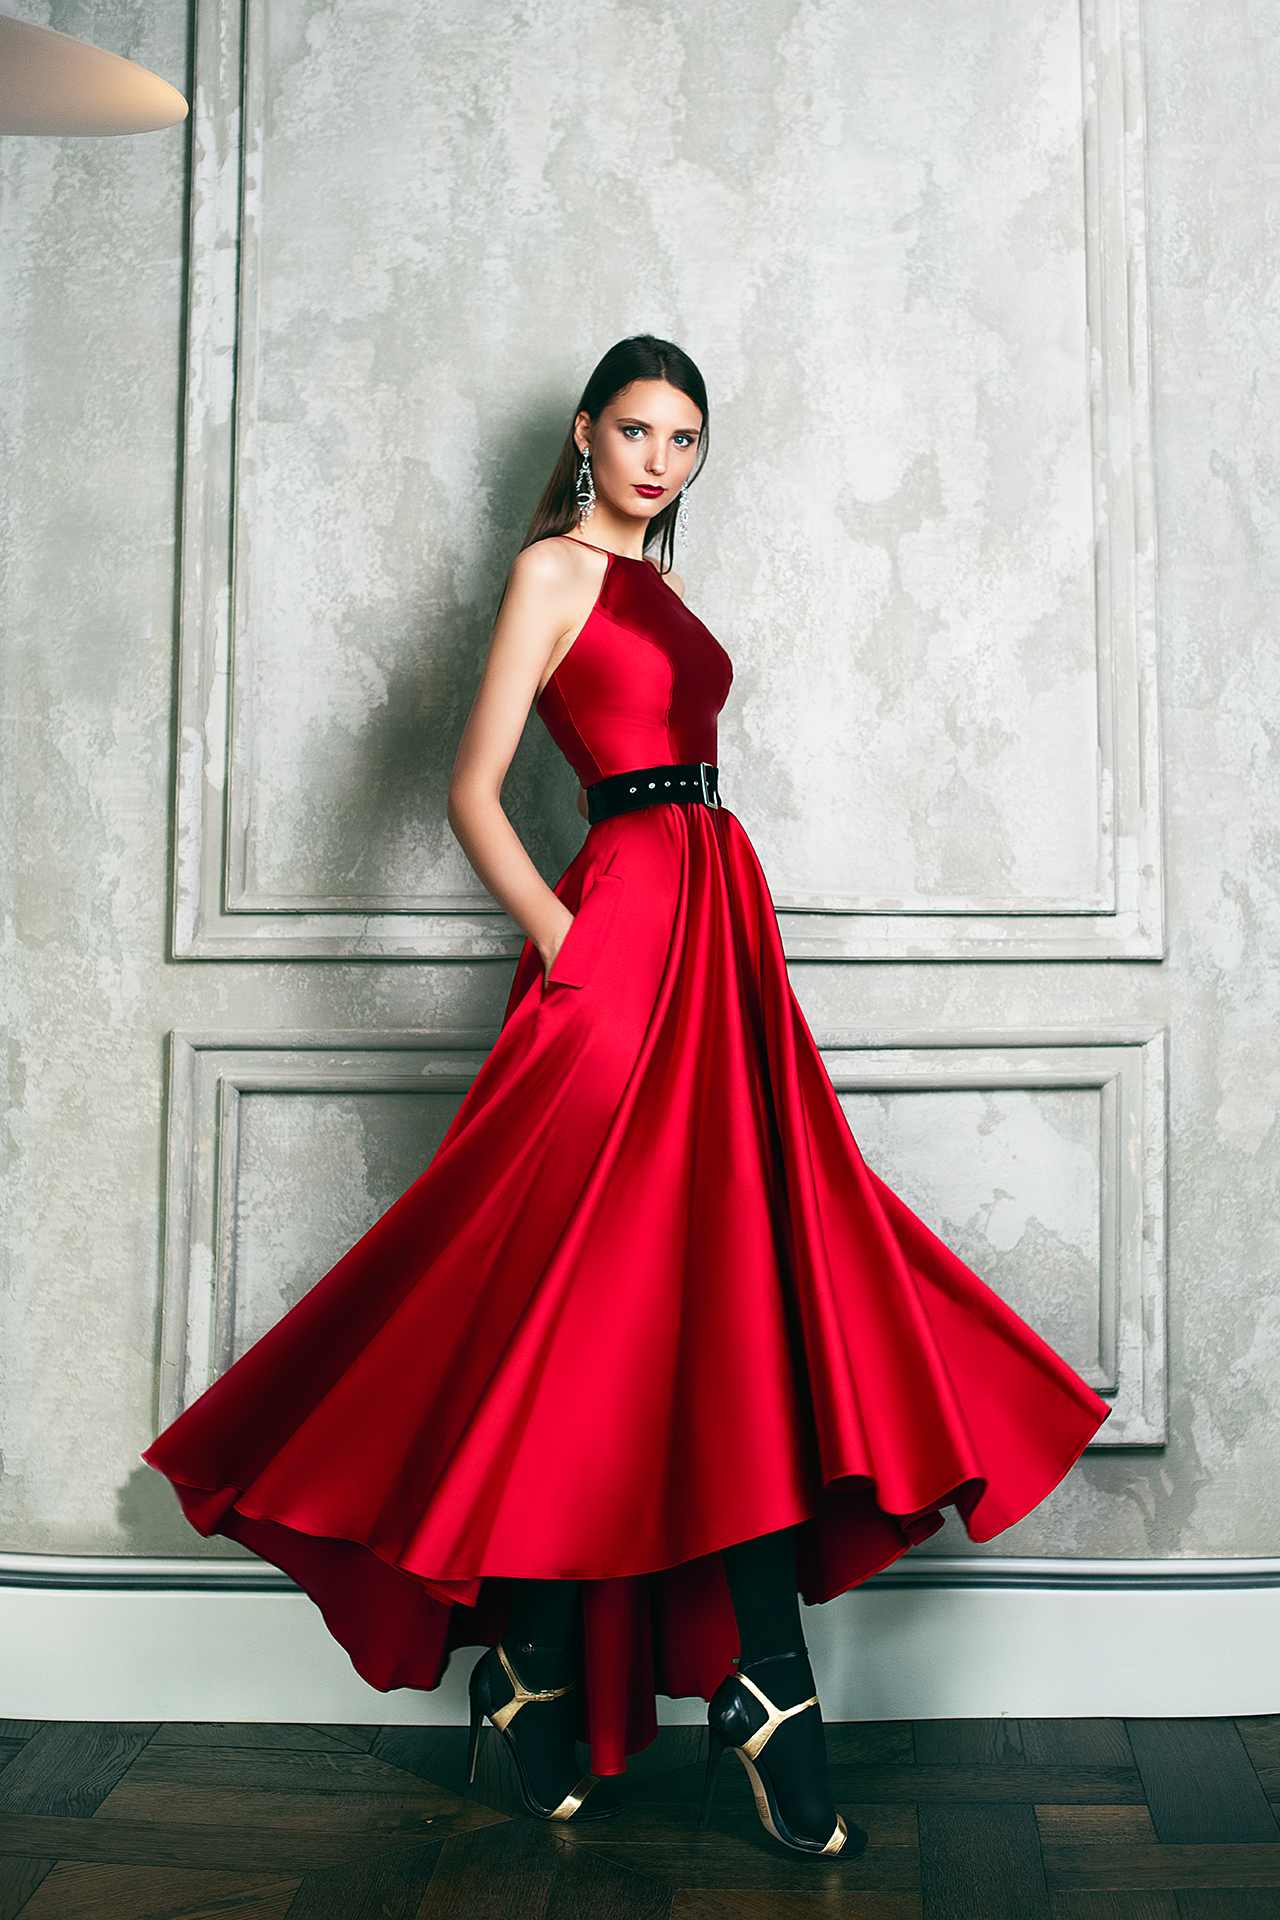 Evening Dresses 1361 Silhouette  A Line  Color  Red  Neckline  Halter  Sleeves  Sleeveless  Train  No train